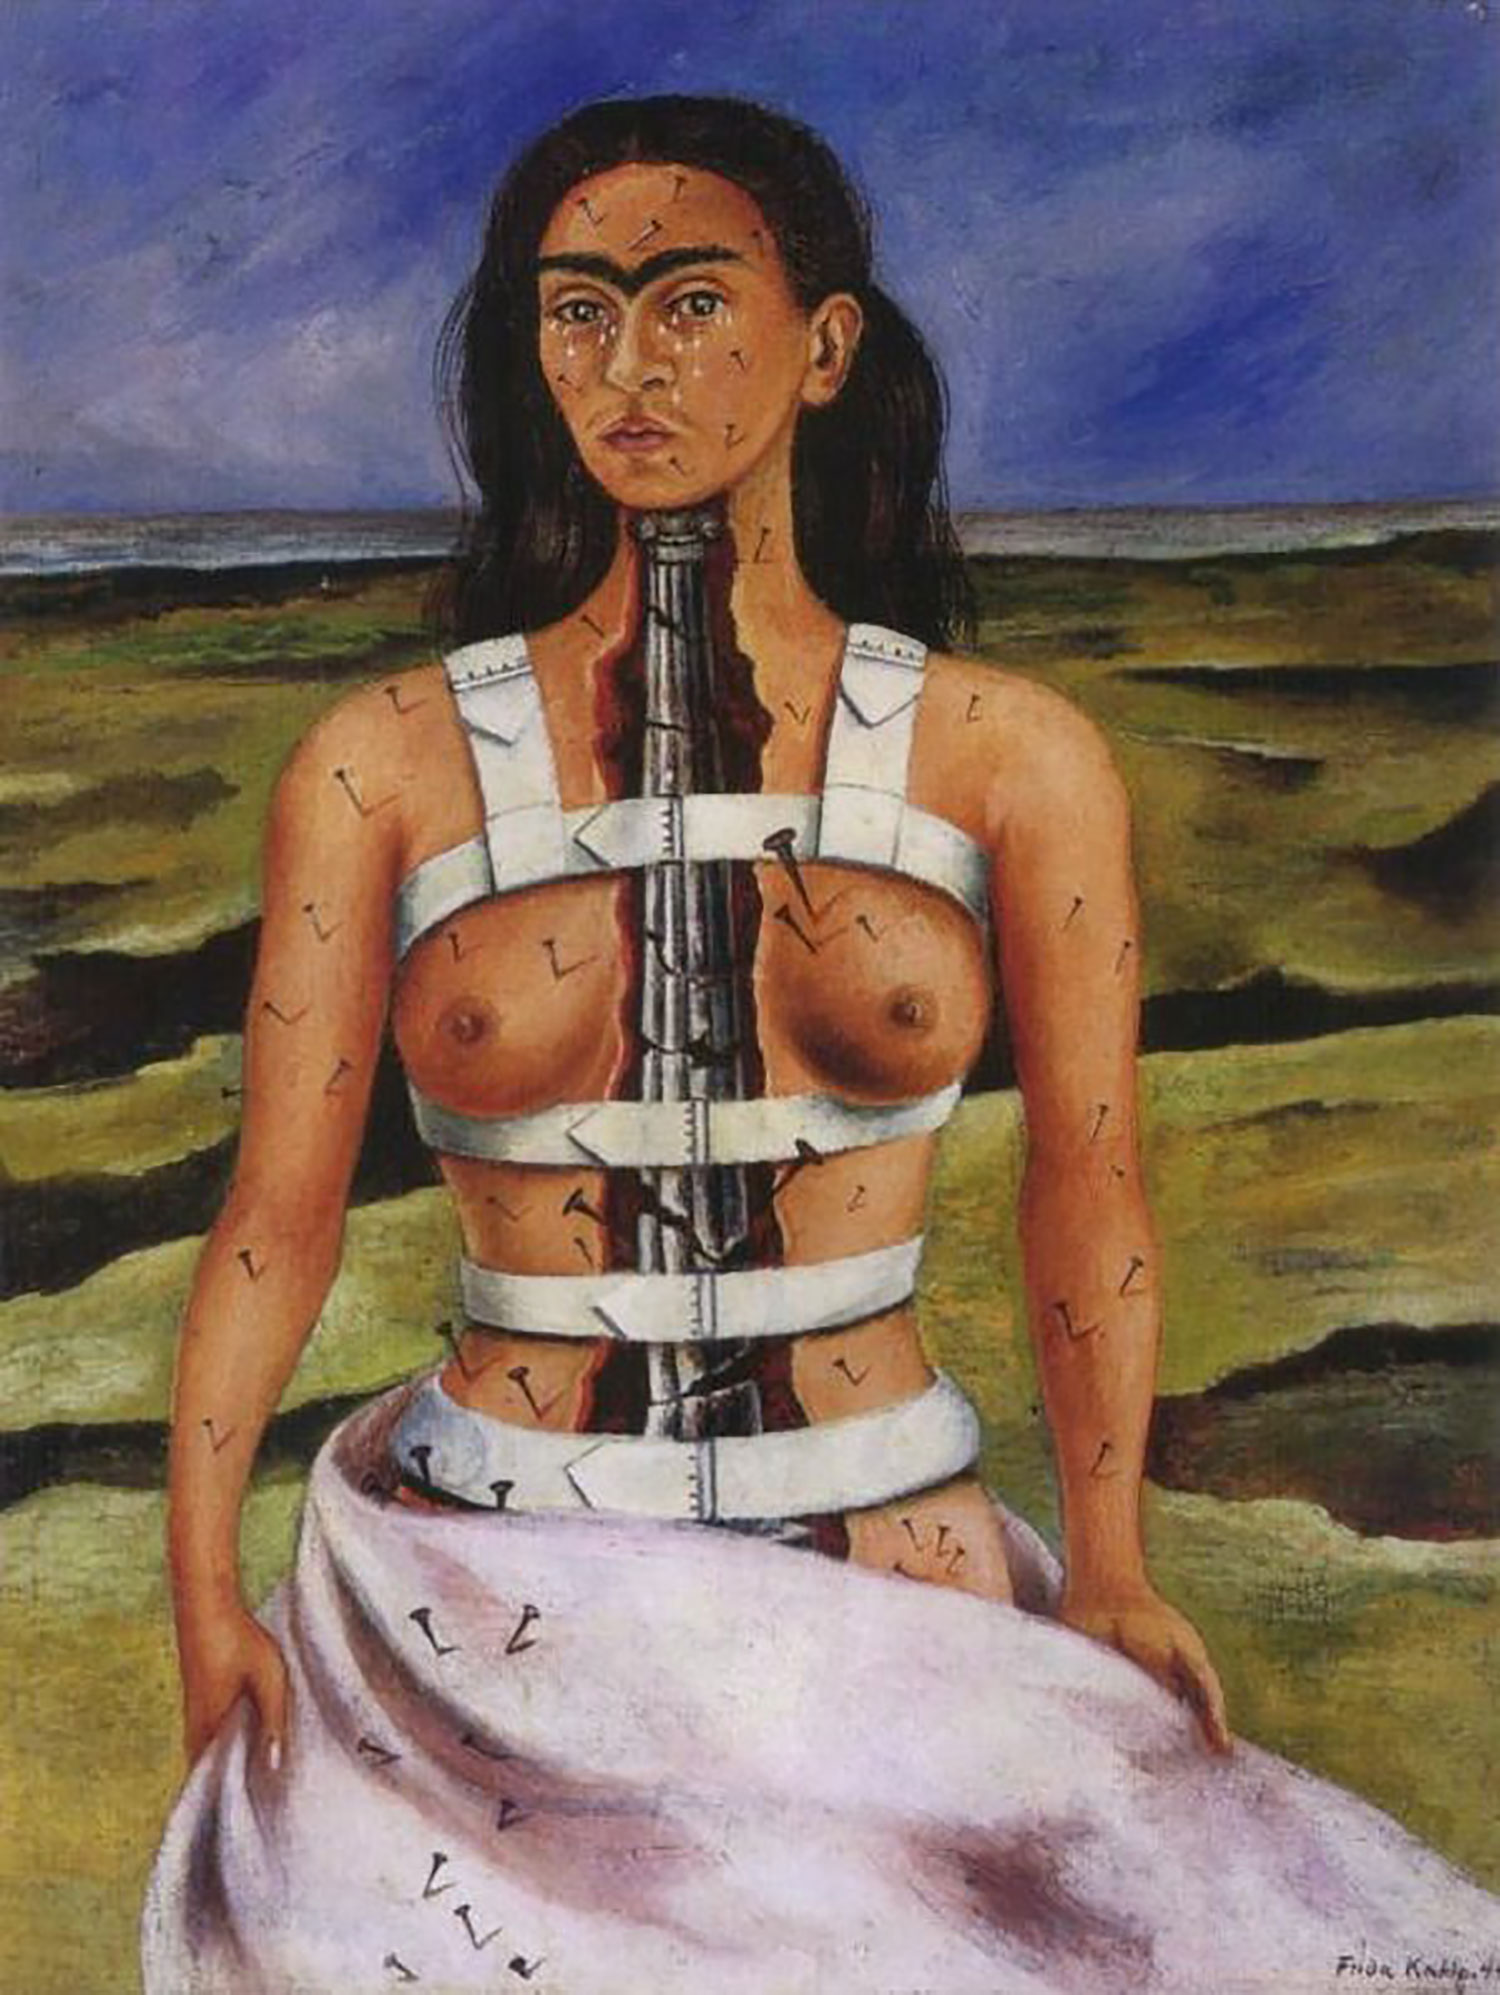 The Broken Column, 1944. Although her body is supported by the corset, she conveys a message of spiritual triumph:  f  ridakahlo.org .